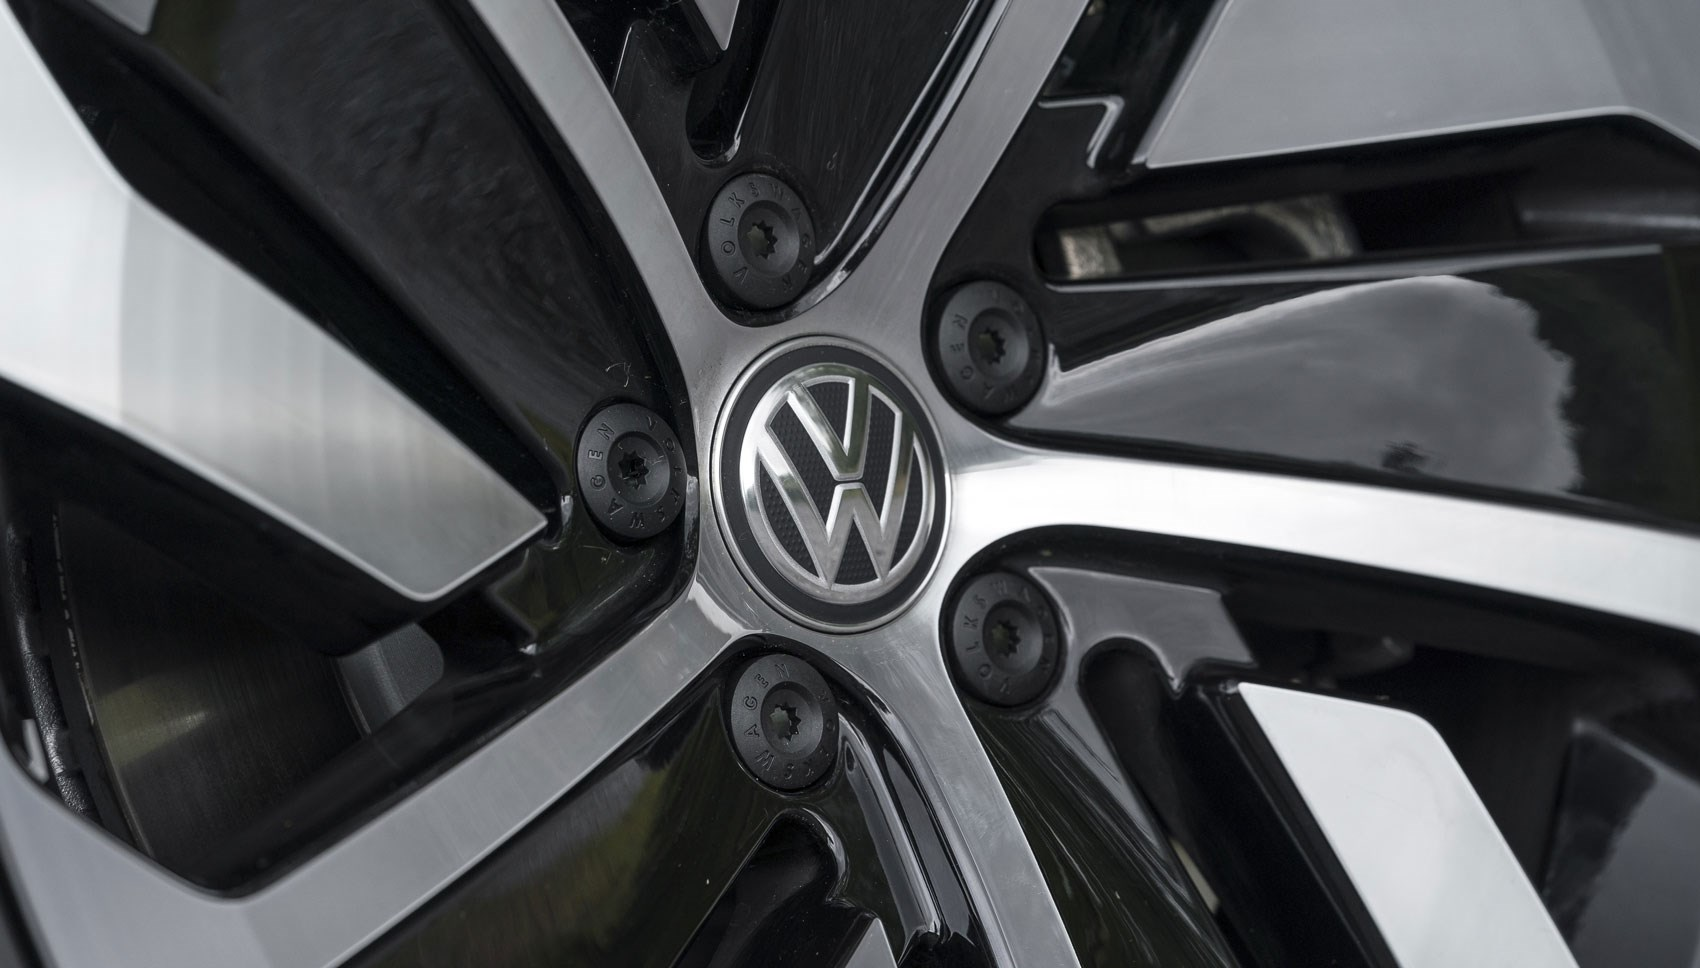 VW Arteon wheel